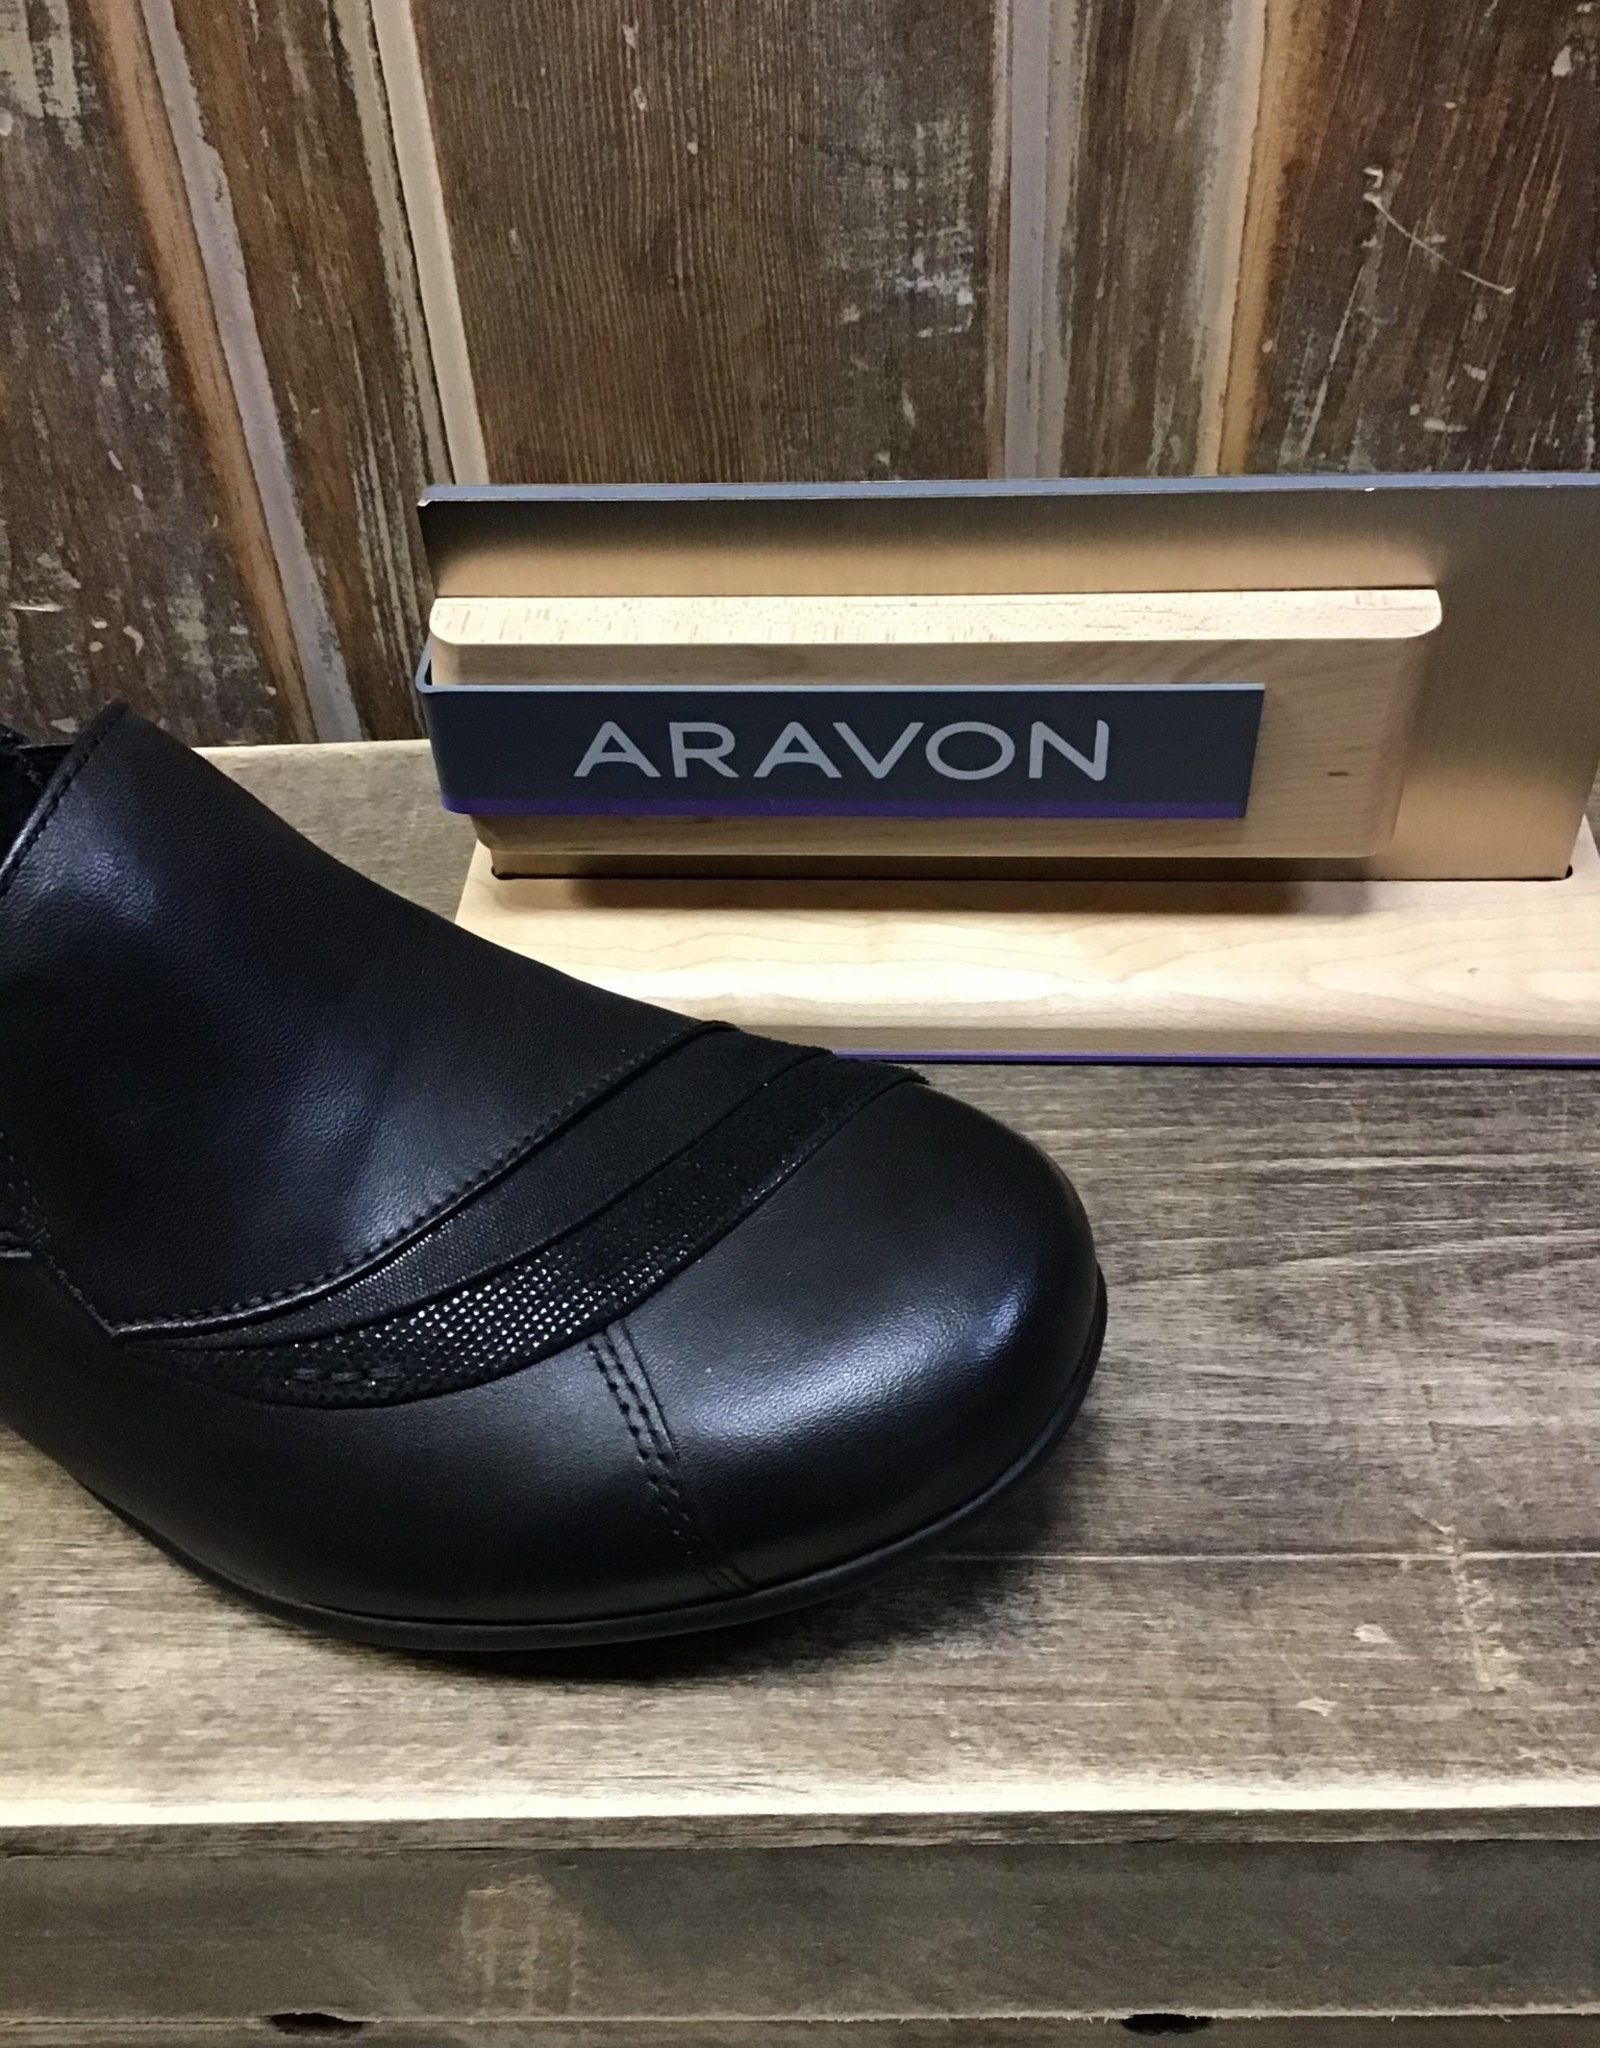 Aravon Aravon Provence Asym Slip On Ladies'